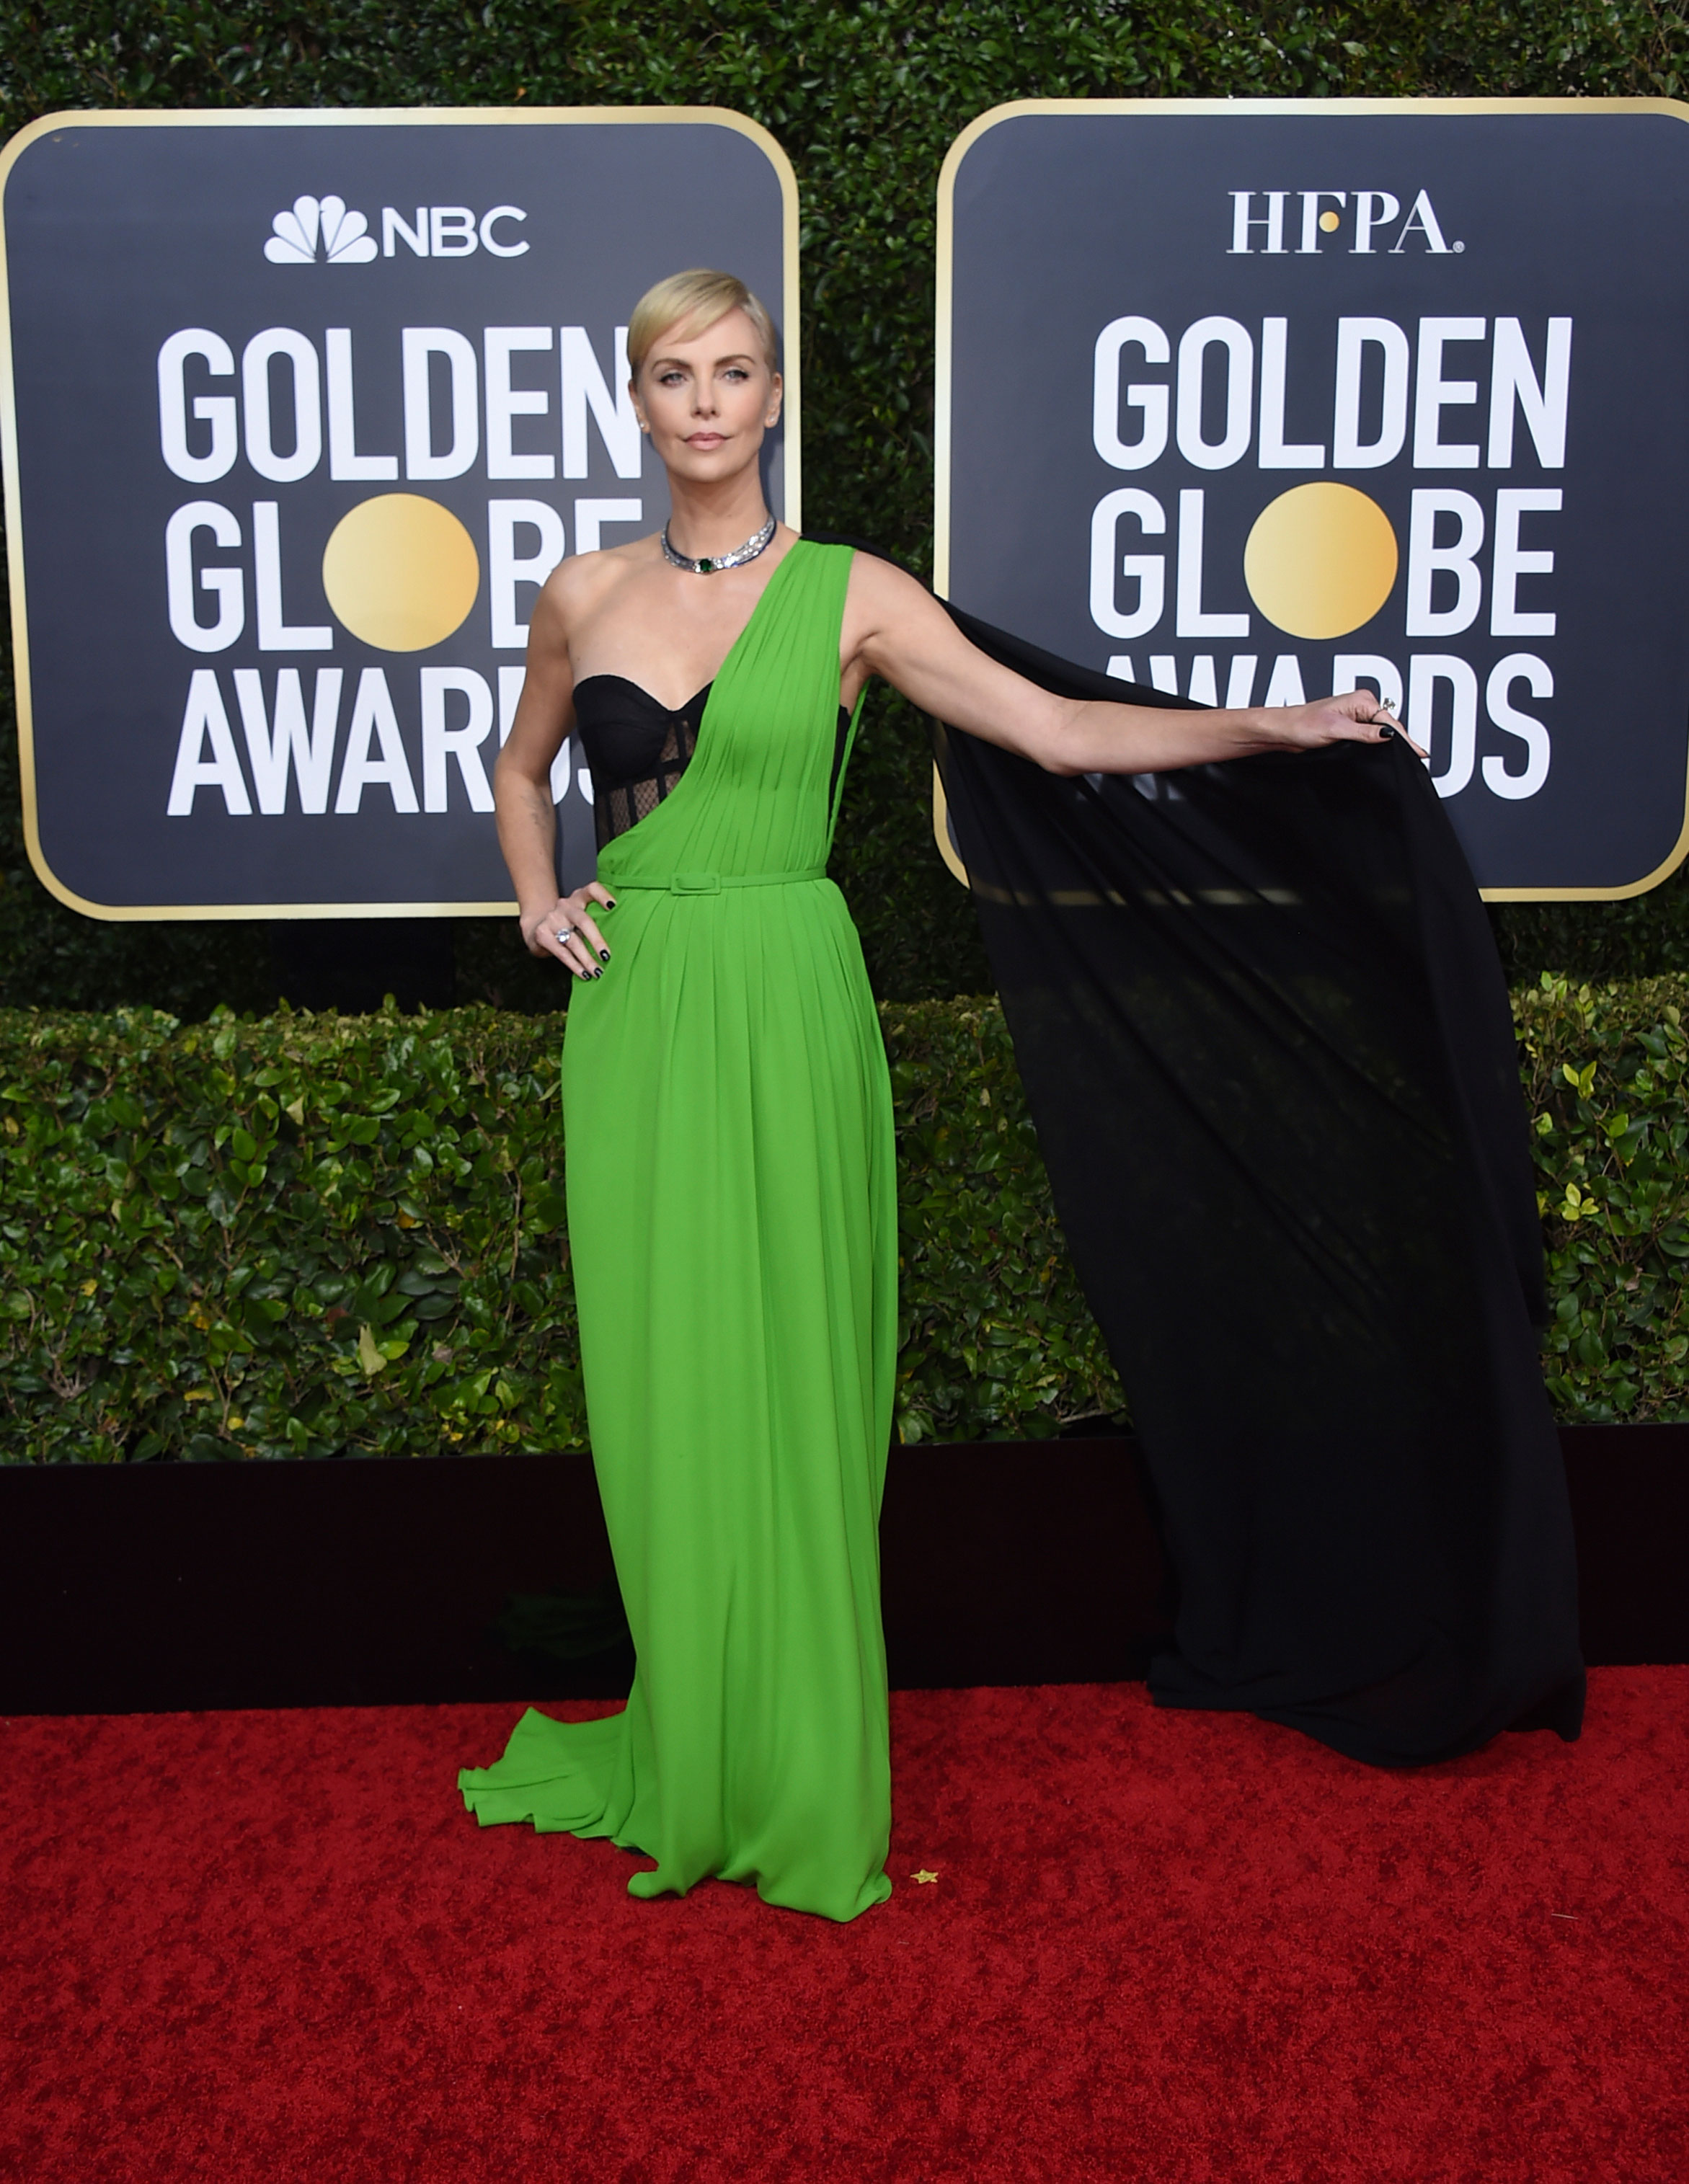 Charlize Theron's minimalist look made us go 'wow'! At 44, the Bombshell actress slayed in a one-shoulder green Dior gown with a flowy black cape that she wore with a lacy black corset and a tiny belt in the same green shade accentuating her tiny waist.